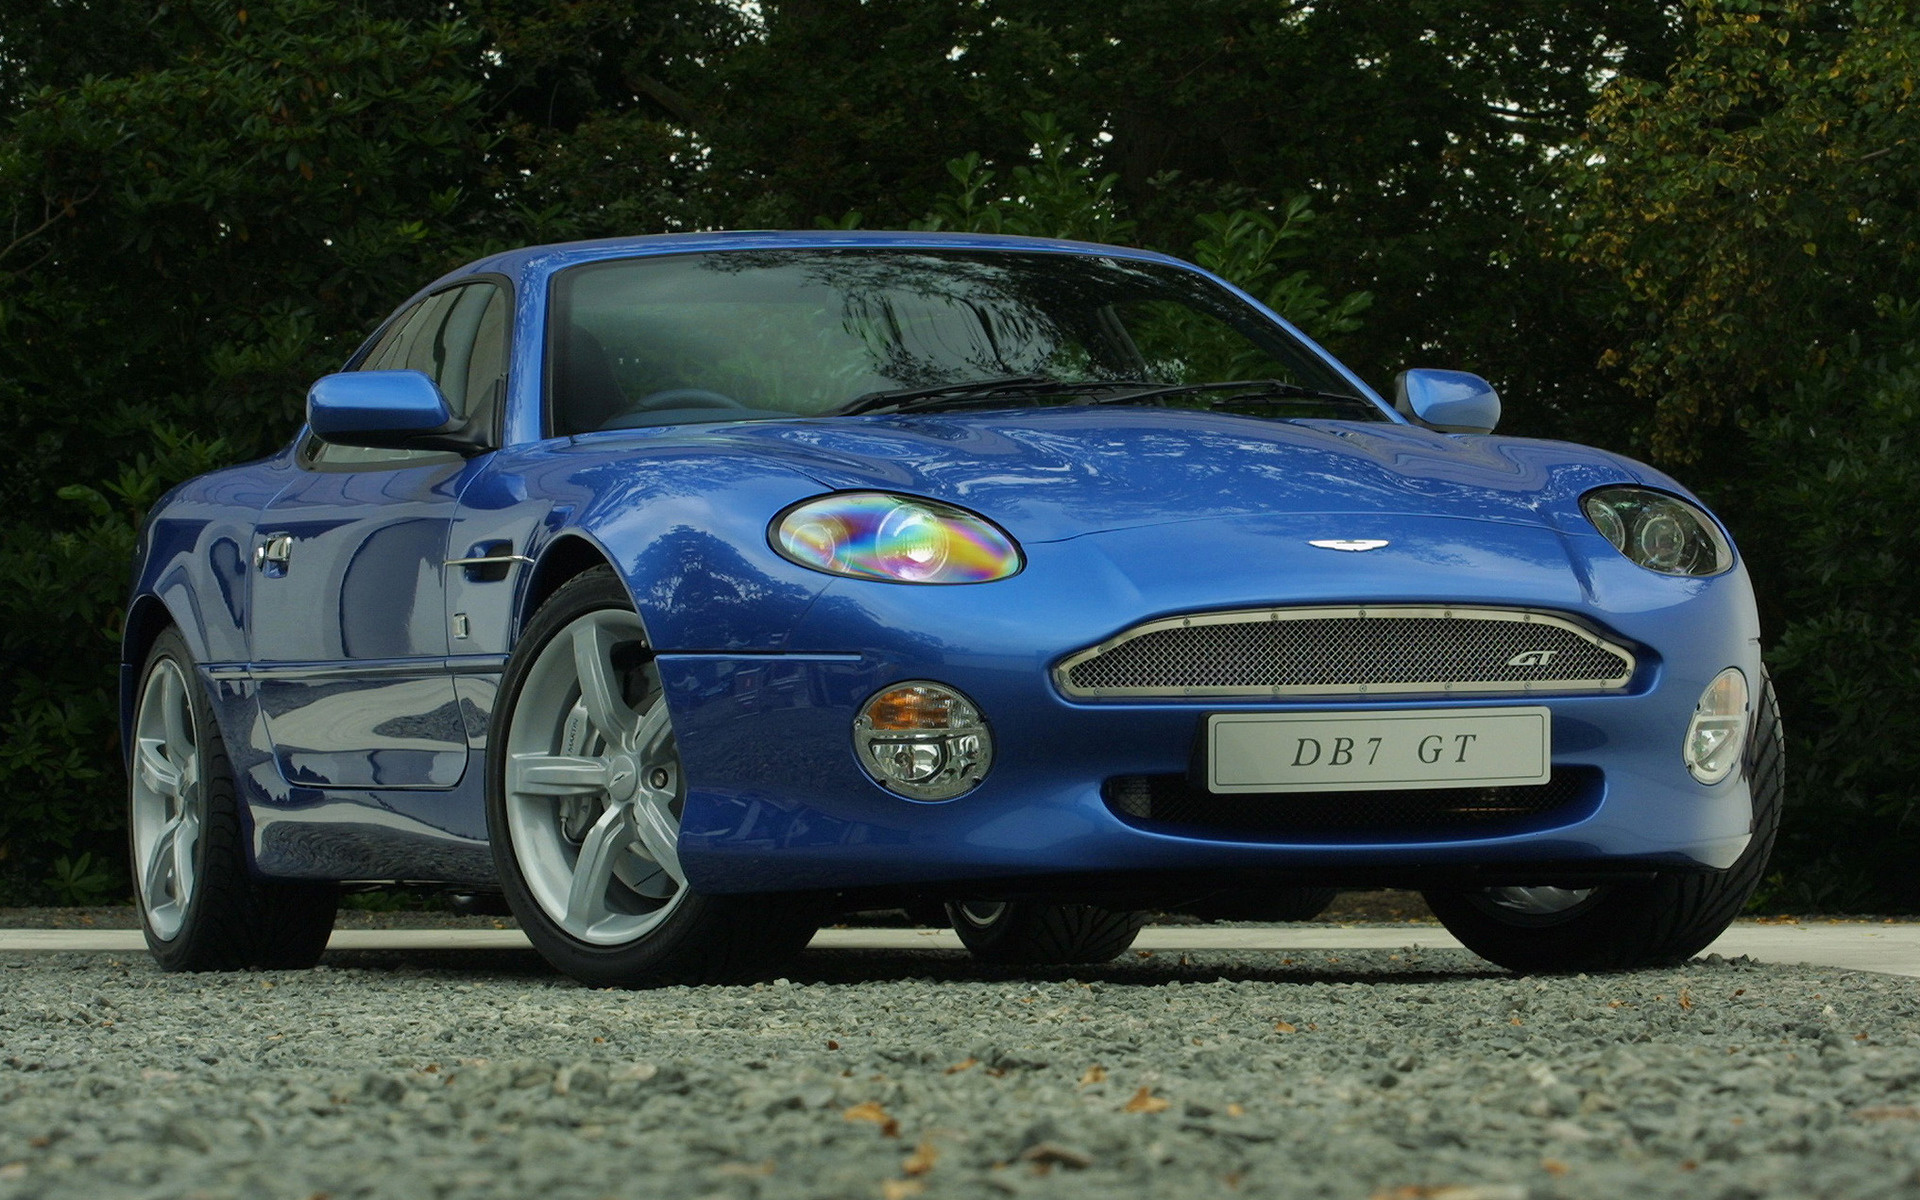 aston martin db7 gt (2003) uk wallpapers and hd images - car pixel